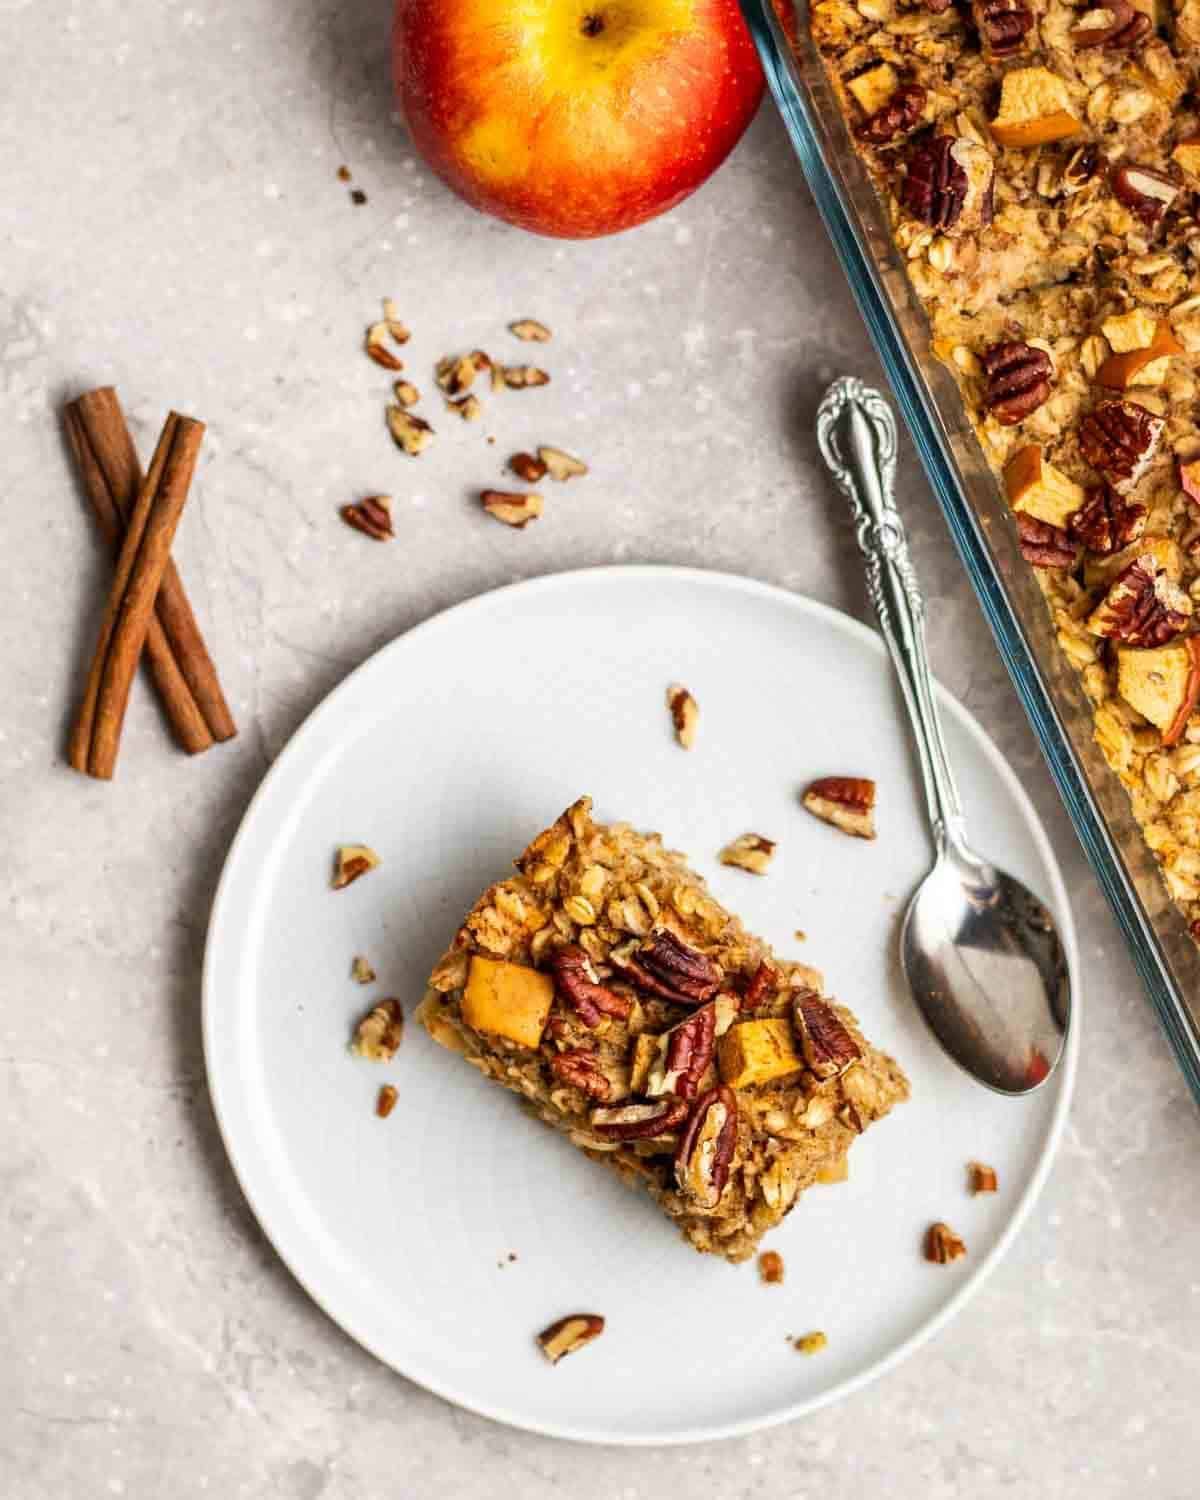 A slice of baked oatmeal on a plate with spoon with cinnamon sticks and chopped pecans beside.